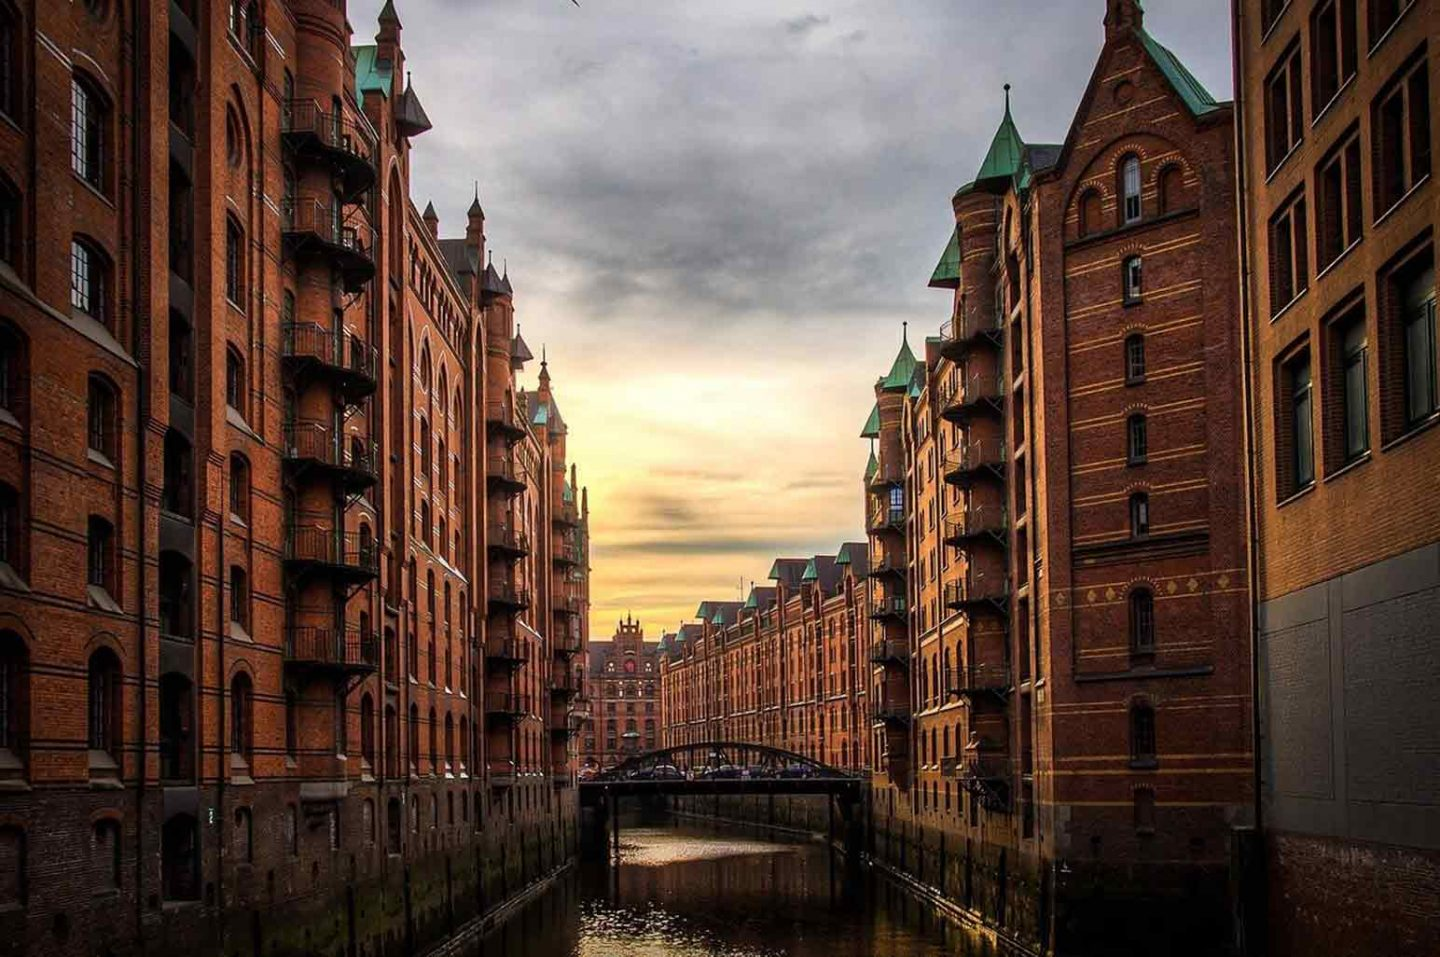 Travel Tips for How to Save Money While Traveling in Europe